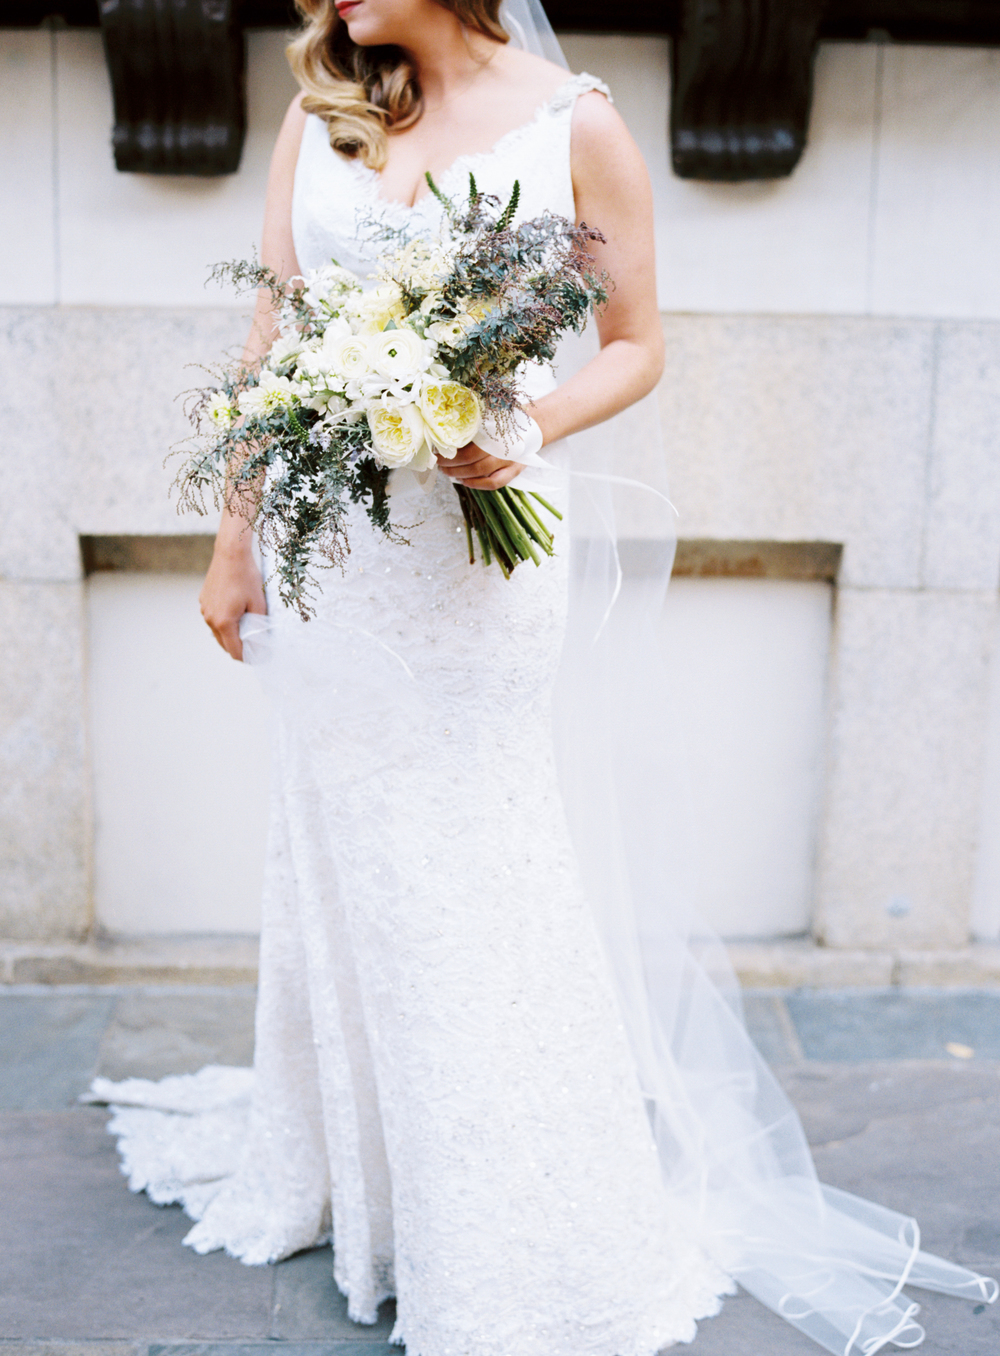 sapphireevents.com | Sapphire Events New Orleans | Austin Gros Photography | Montegut House Weddings and Events